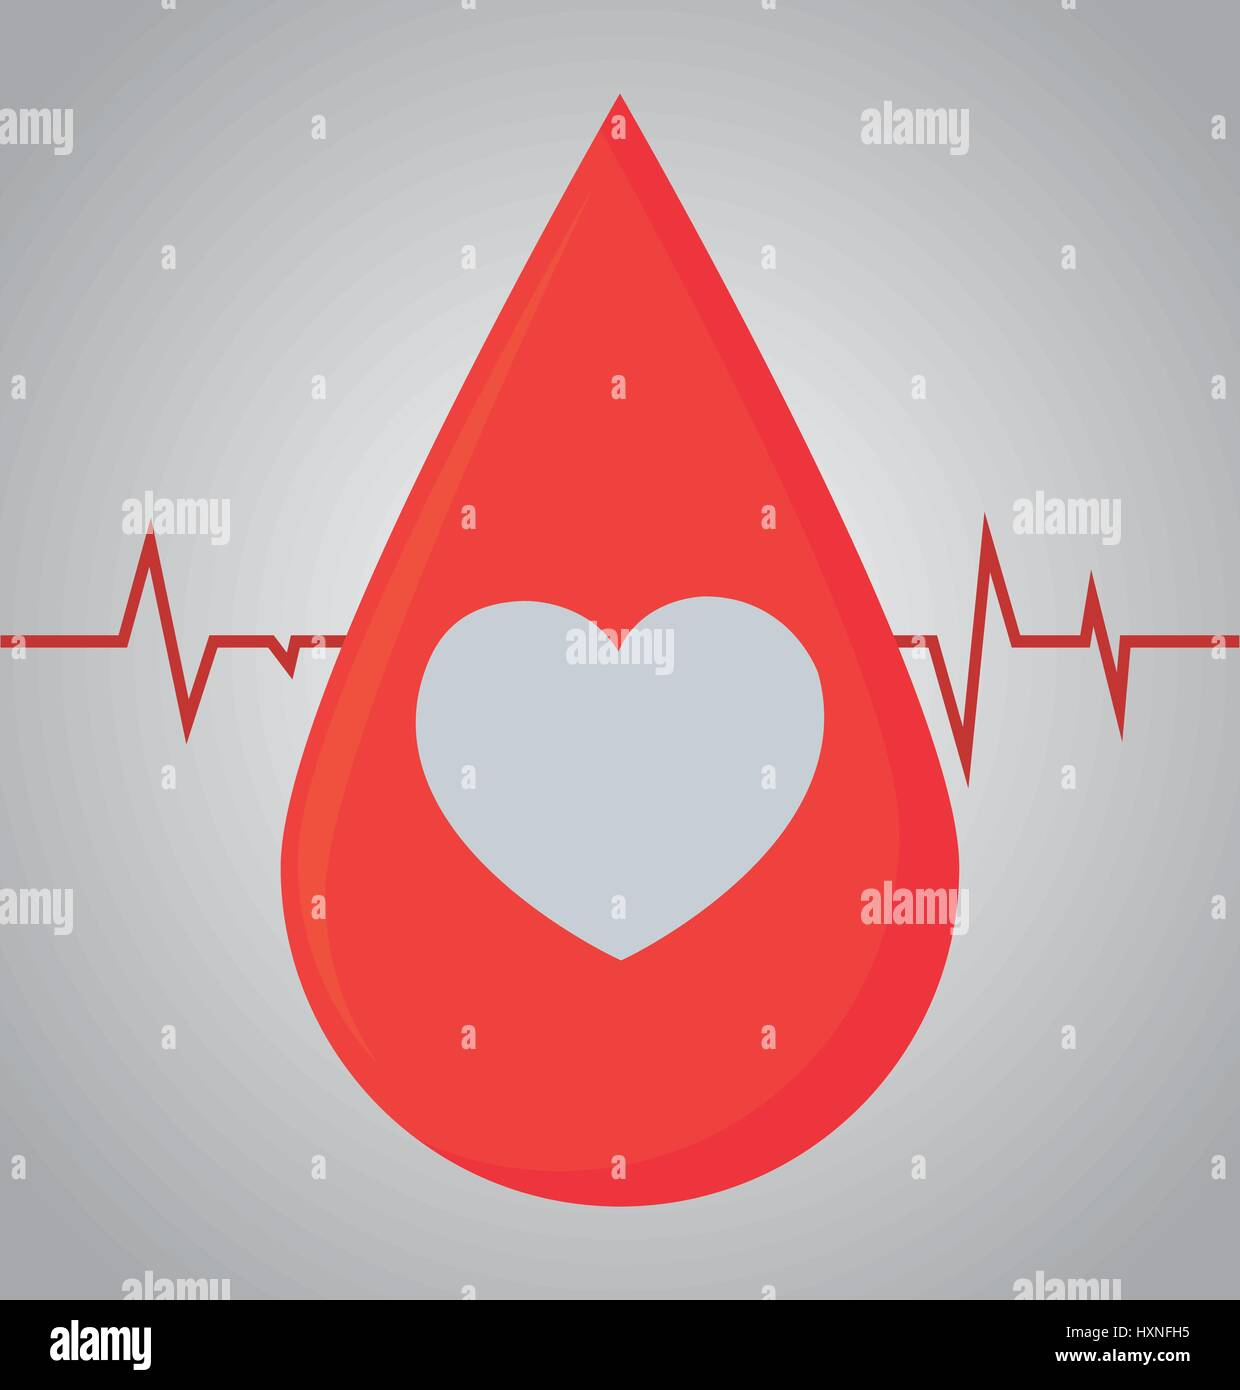 donation blood design - Stock Image